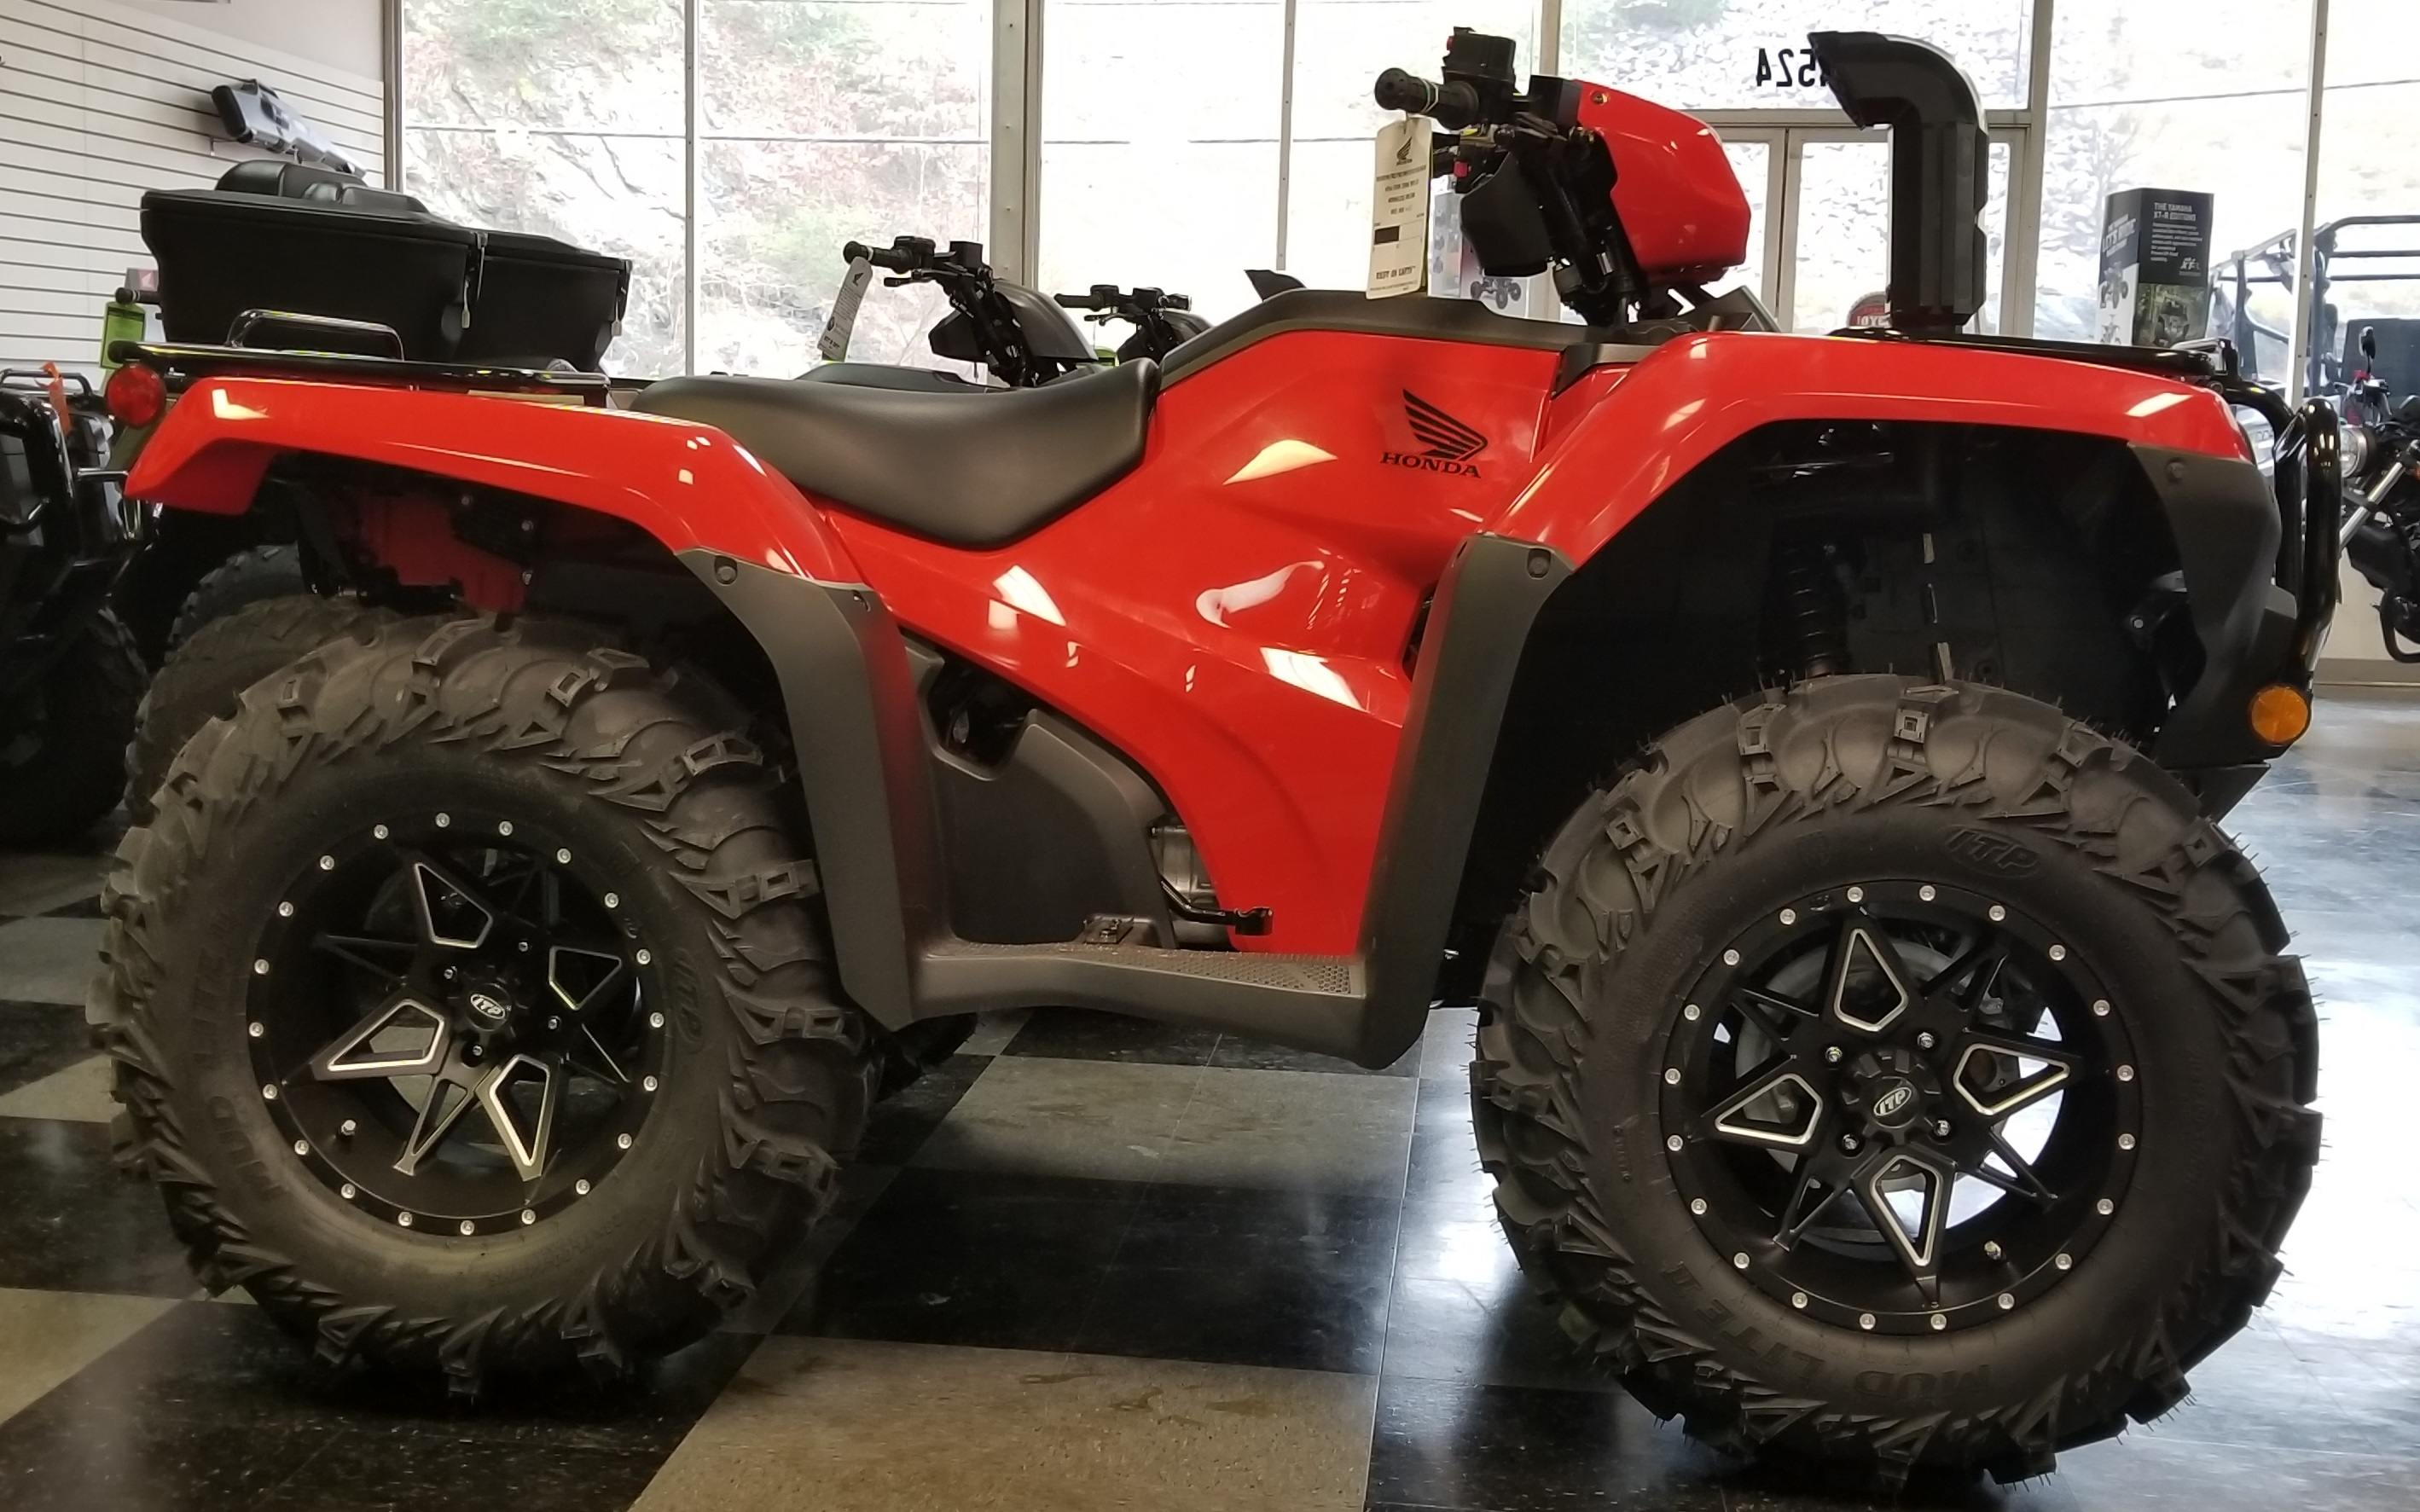 New And Used Motorsport Vehicles For Sale Atvs Motorcycles Utvs North Little Rock Hondanlr Com